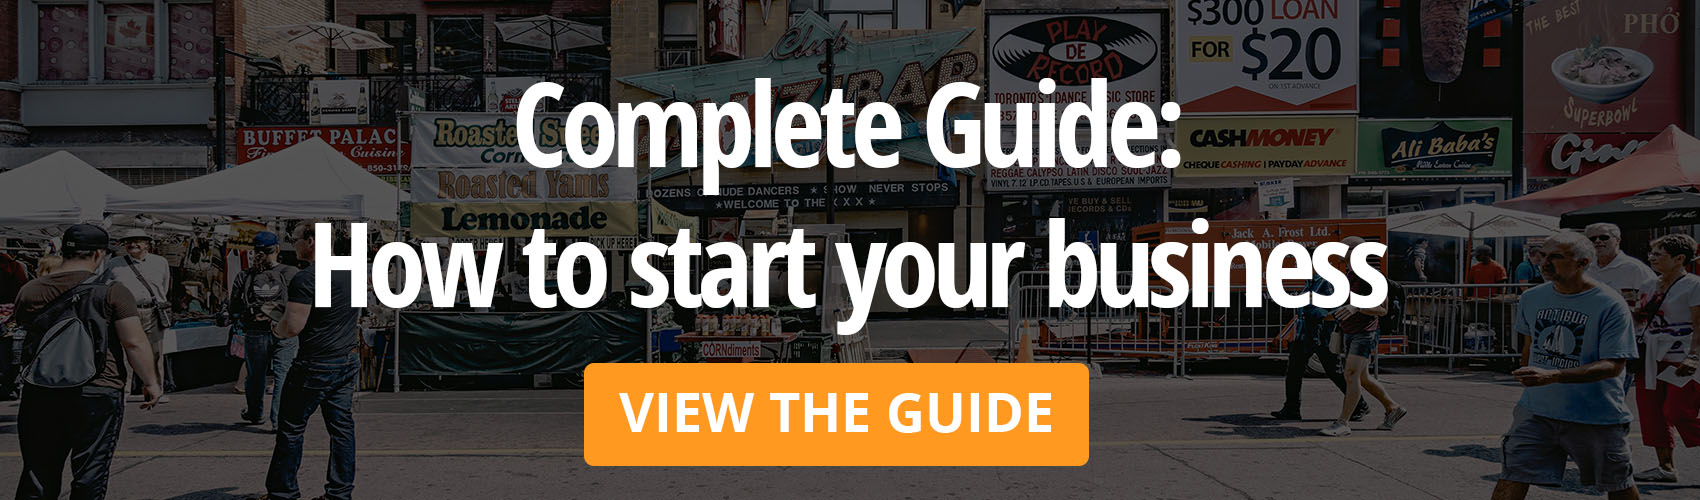 See Guidant's How to Start a Business Complete Guide